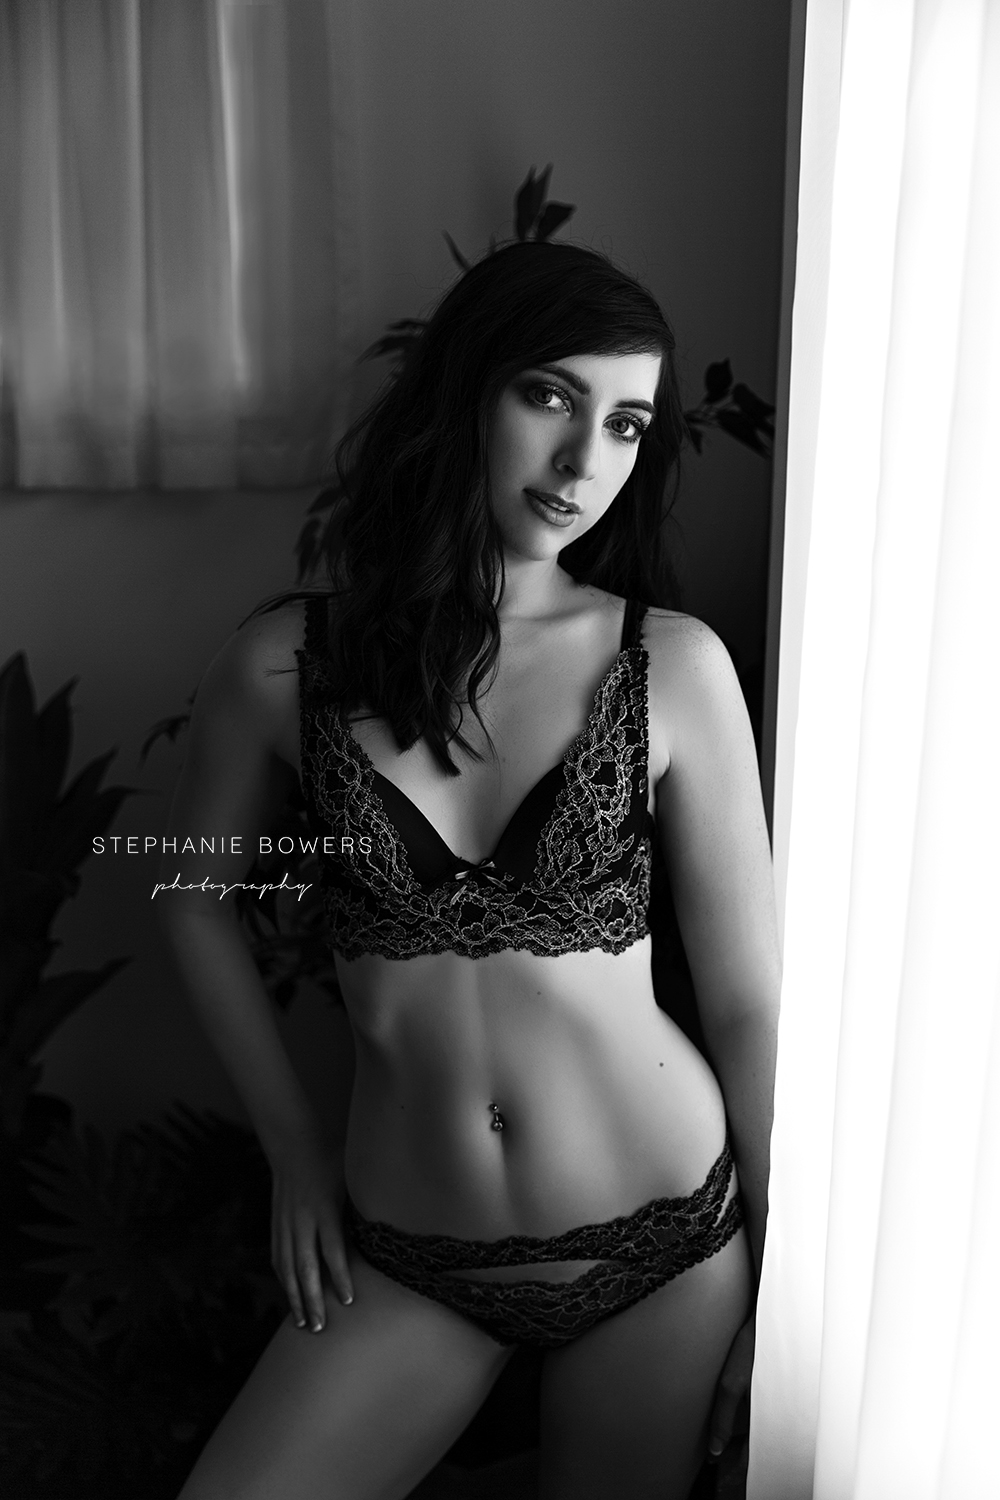 b068b-ChristyBoudoir_26.jpg